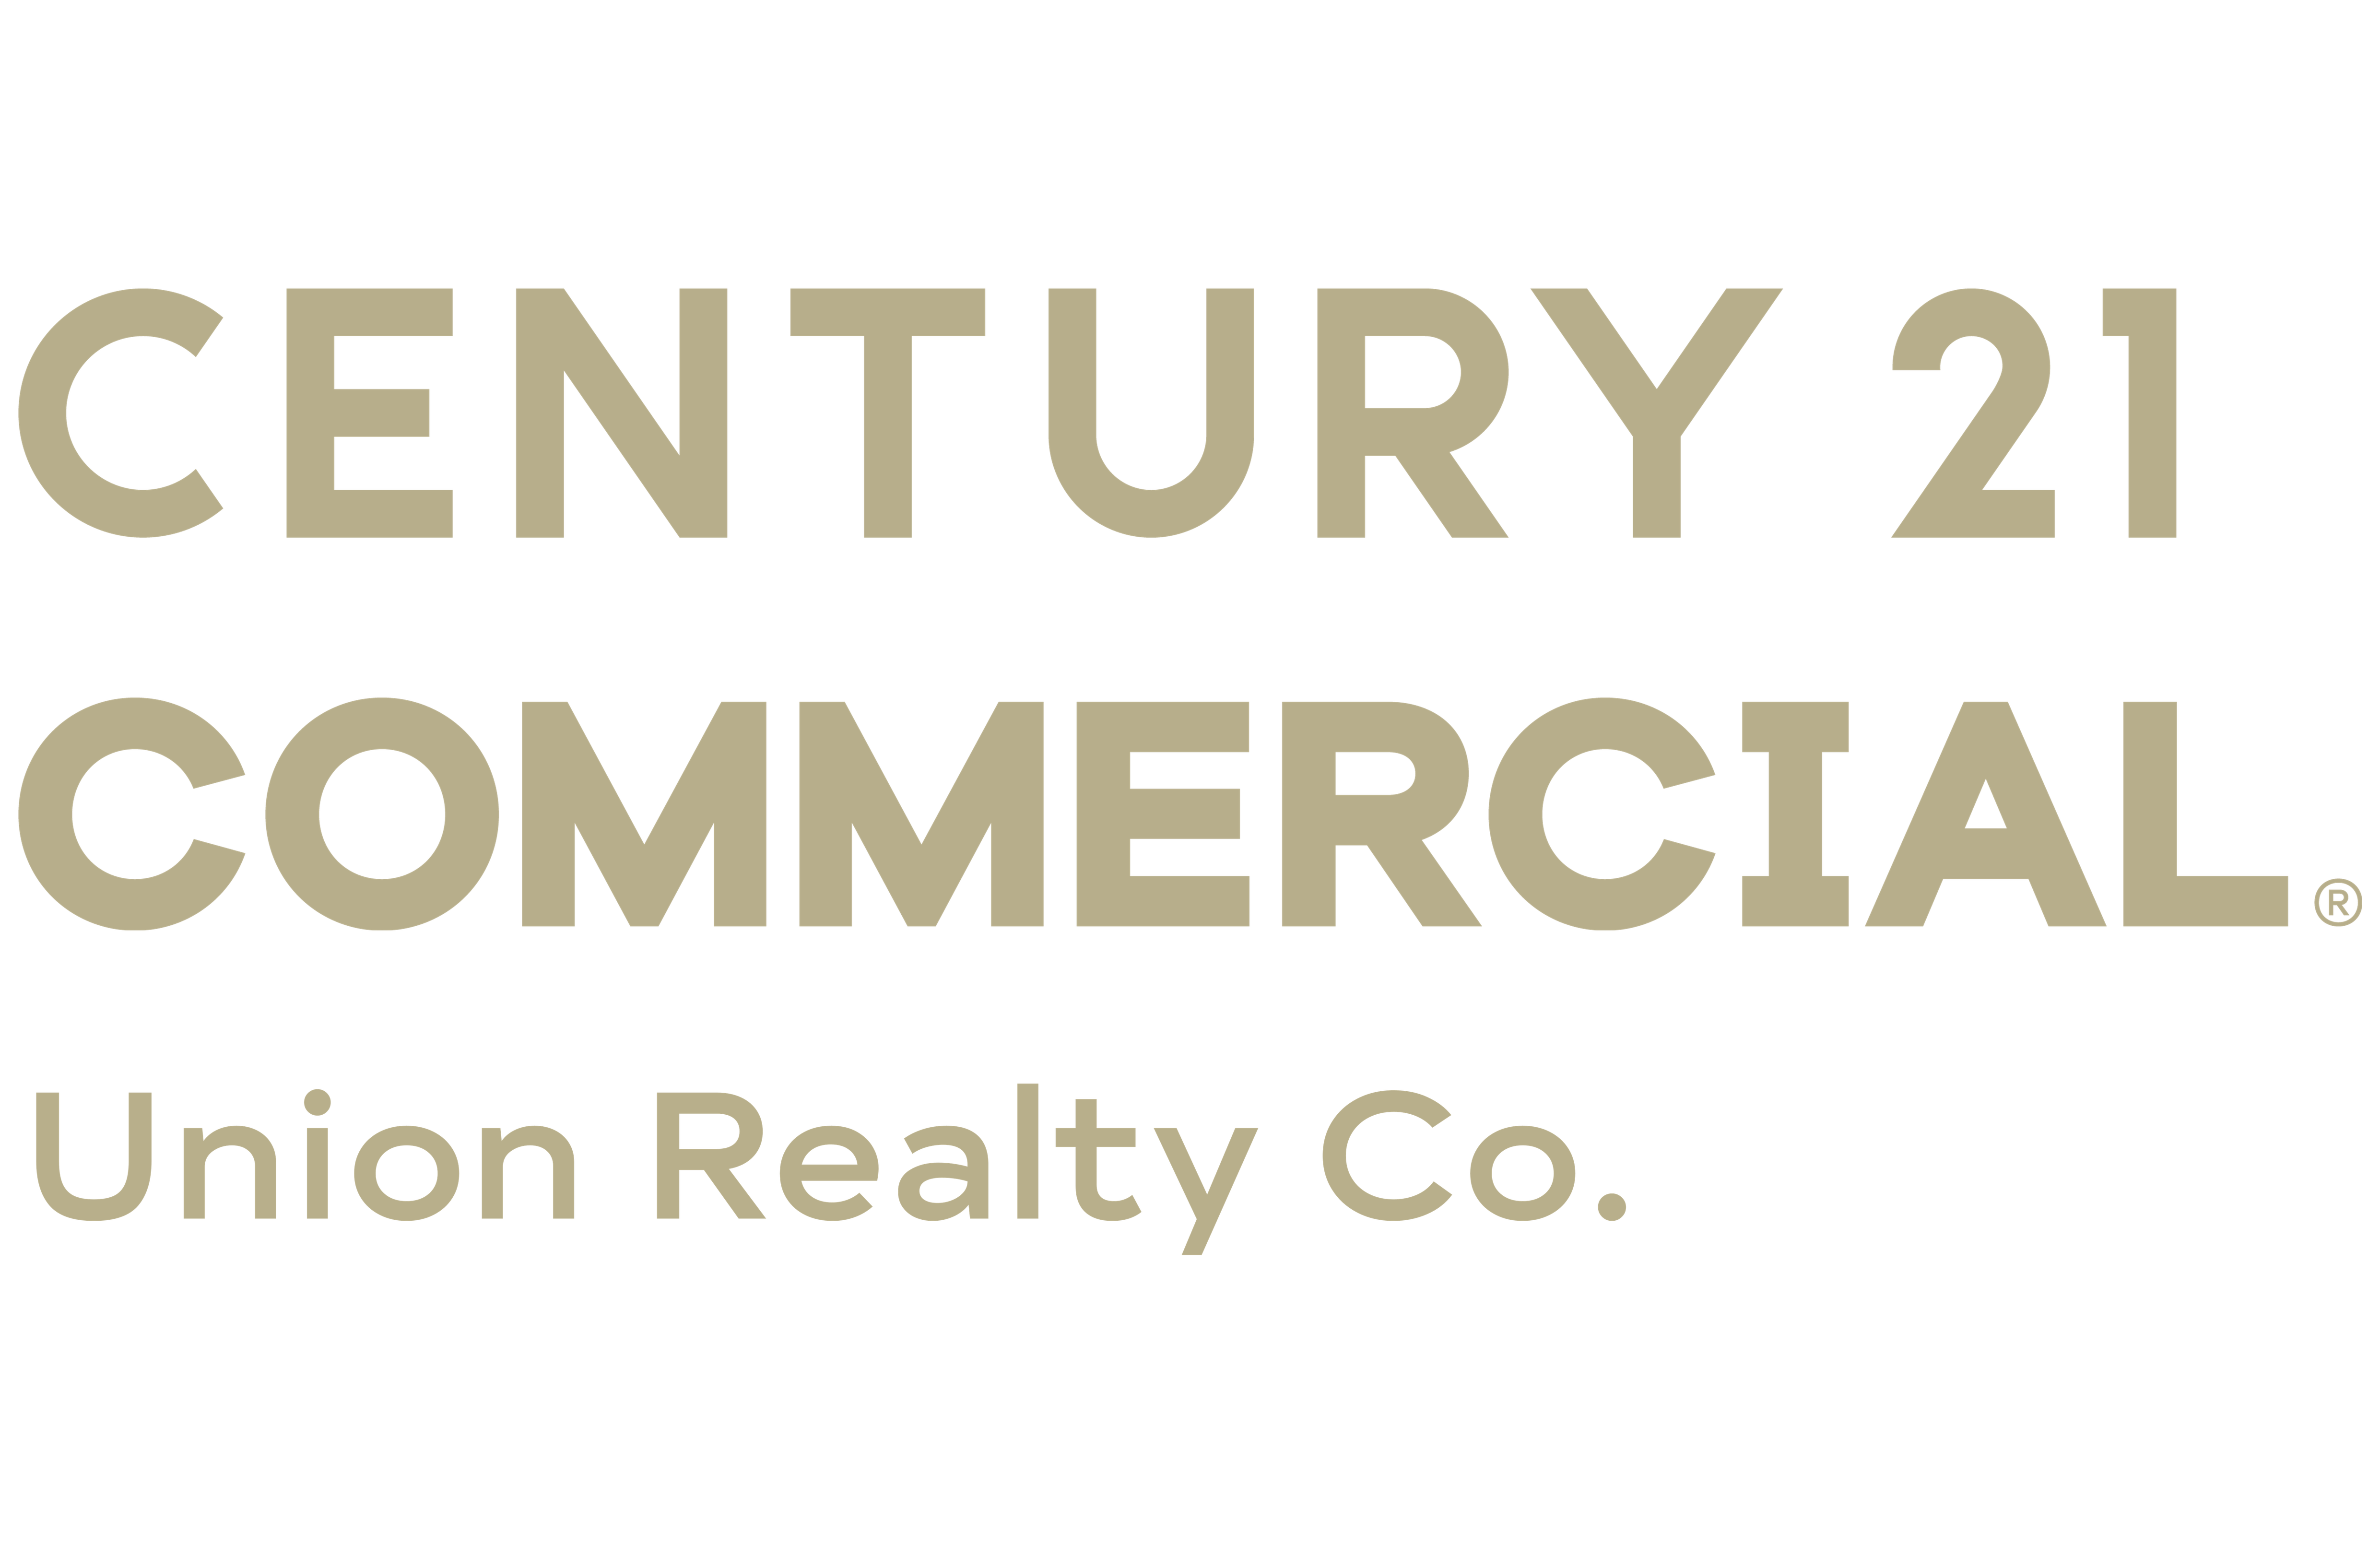 Vishesh Sharma of CENTURY 21 Union Realty Co. logo